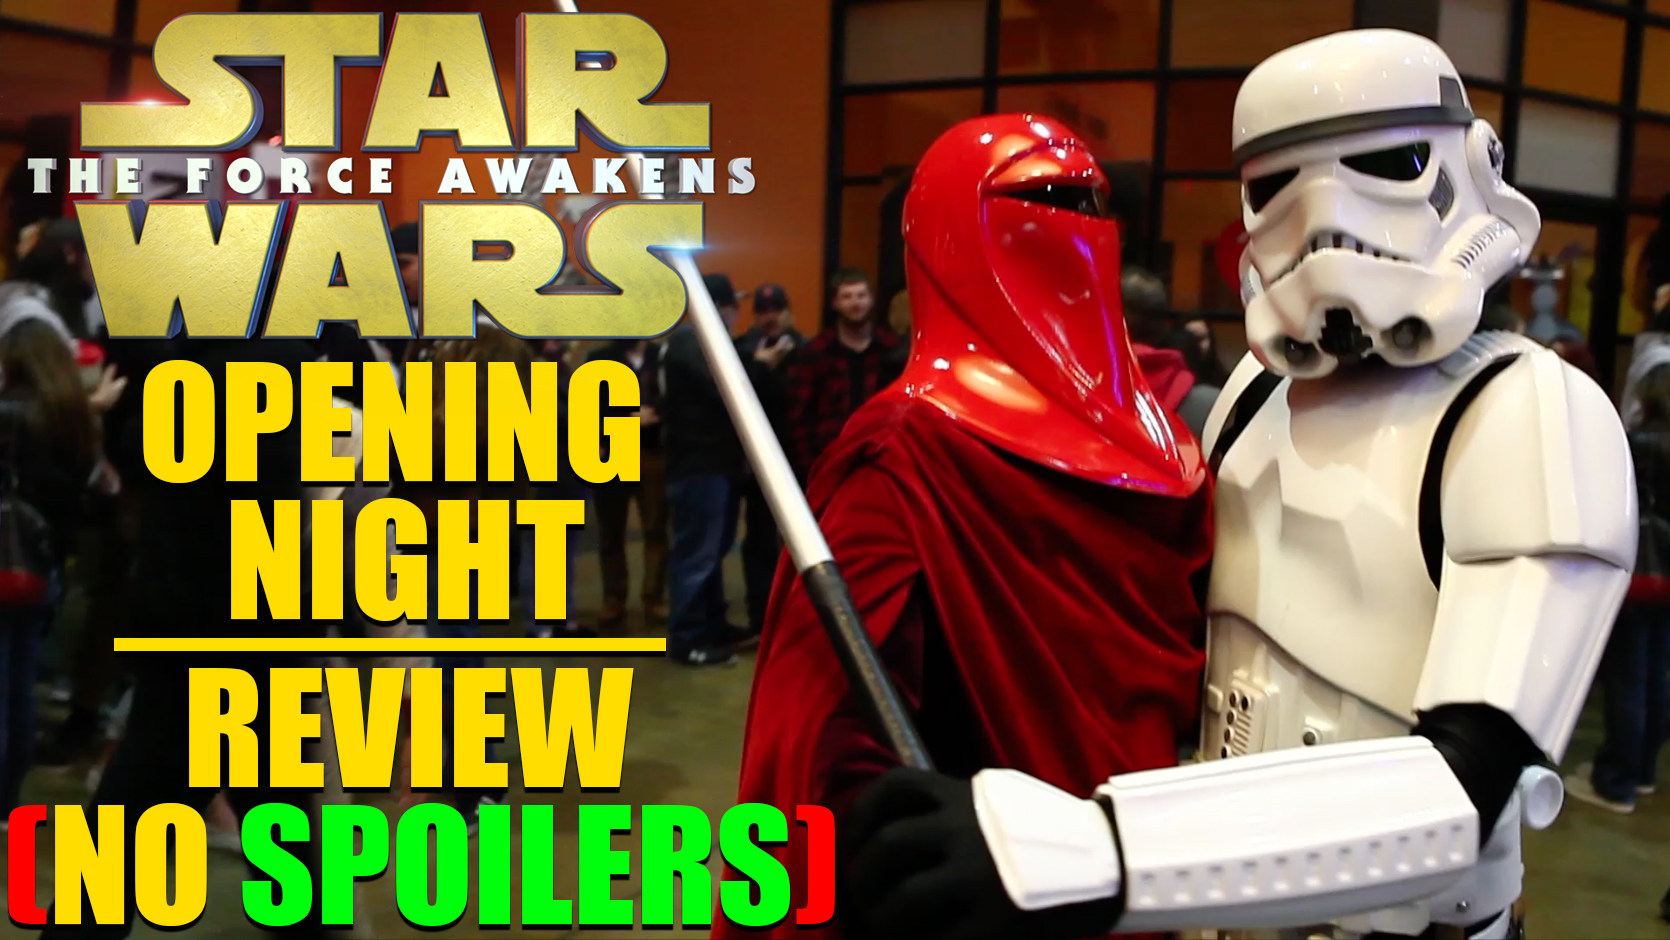 STARWARS REVIEW SPOILER FREE